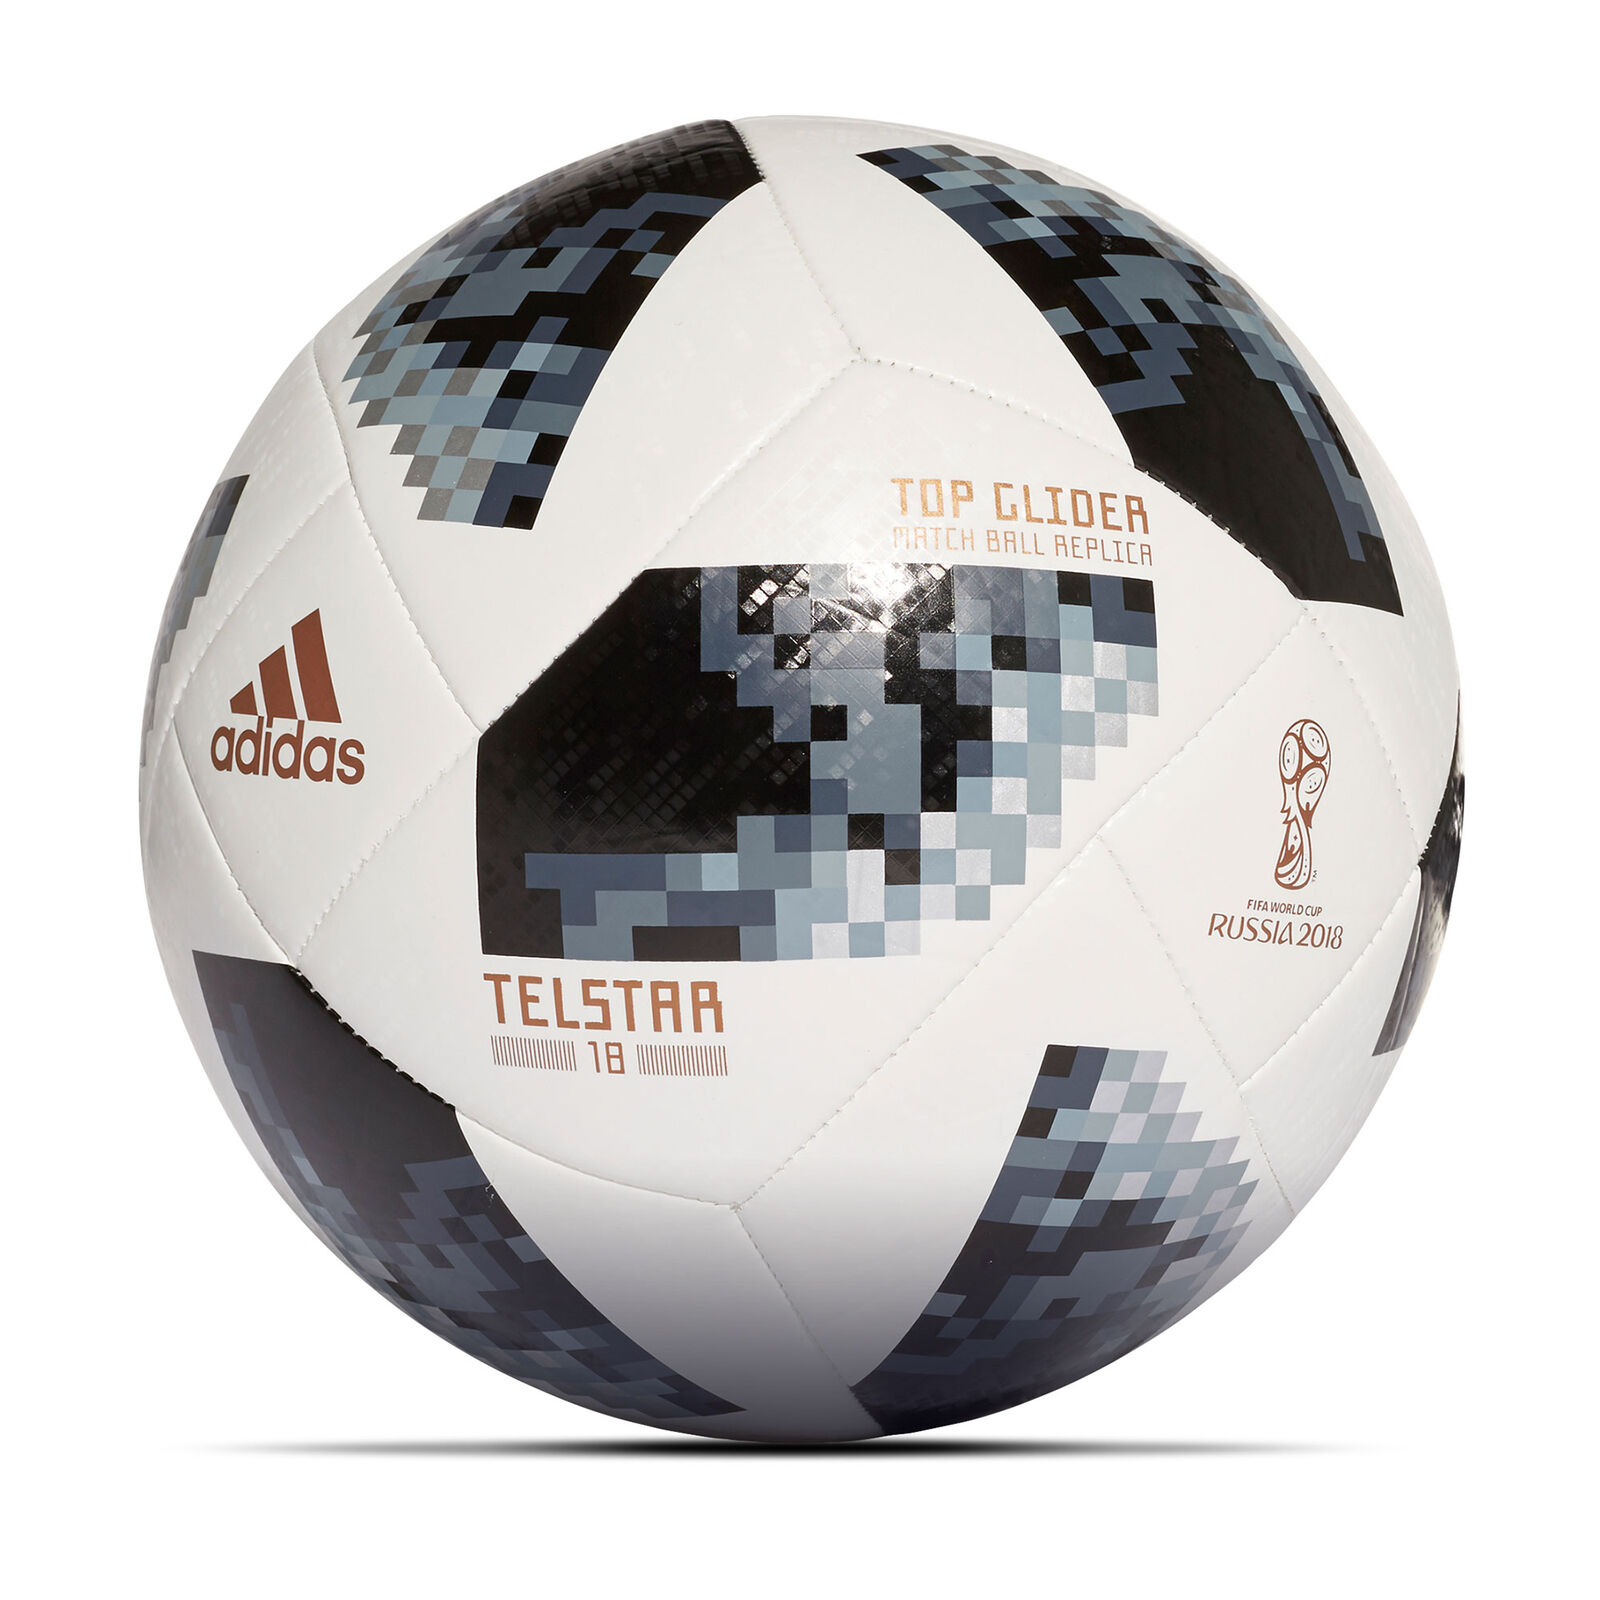 Camiseta adidas Football World Cup Top 2018 Telstar Top Glider Football 2018 blanco Ce8096 3f842d2 - rspr.host